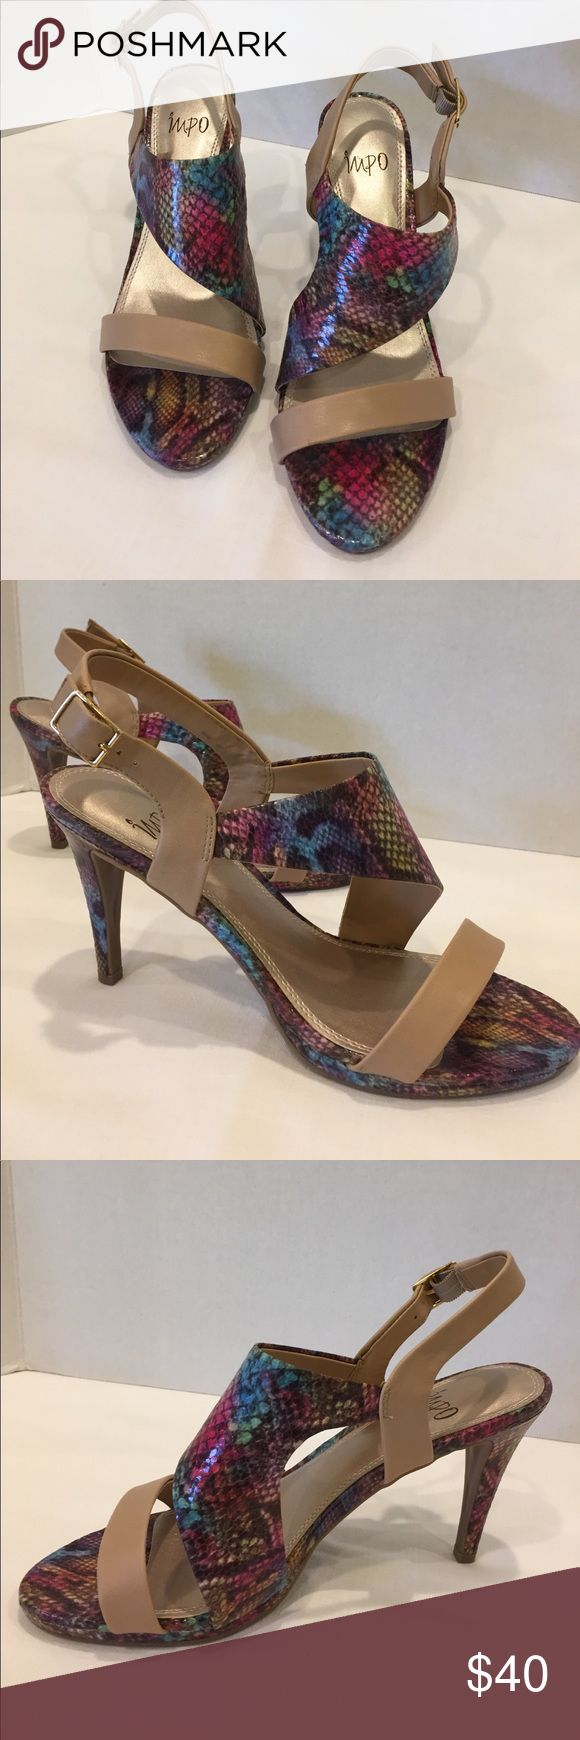 """NWOT Impo multi color snake heels These NWOT strappy heels literally go with EVERYTHING!  These multi-colored strappy heels have a snake skin pattern that includes tan, blue, pink, green, yellow, etc.....perfect pop of color for any outfit!  The heel is 4"""" high.  I'm selling these for my mom...she decided they were too high for her.  These shoes have never been worn, just tried on inside the house. Impo Shoes"""